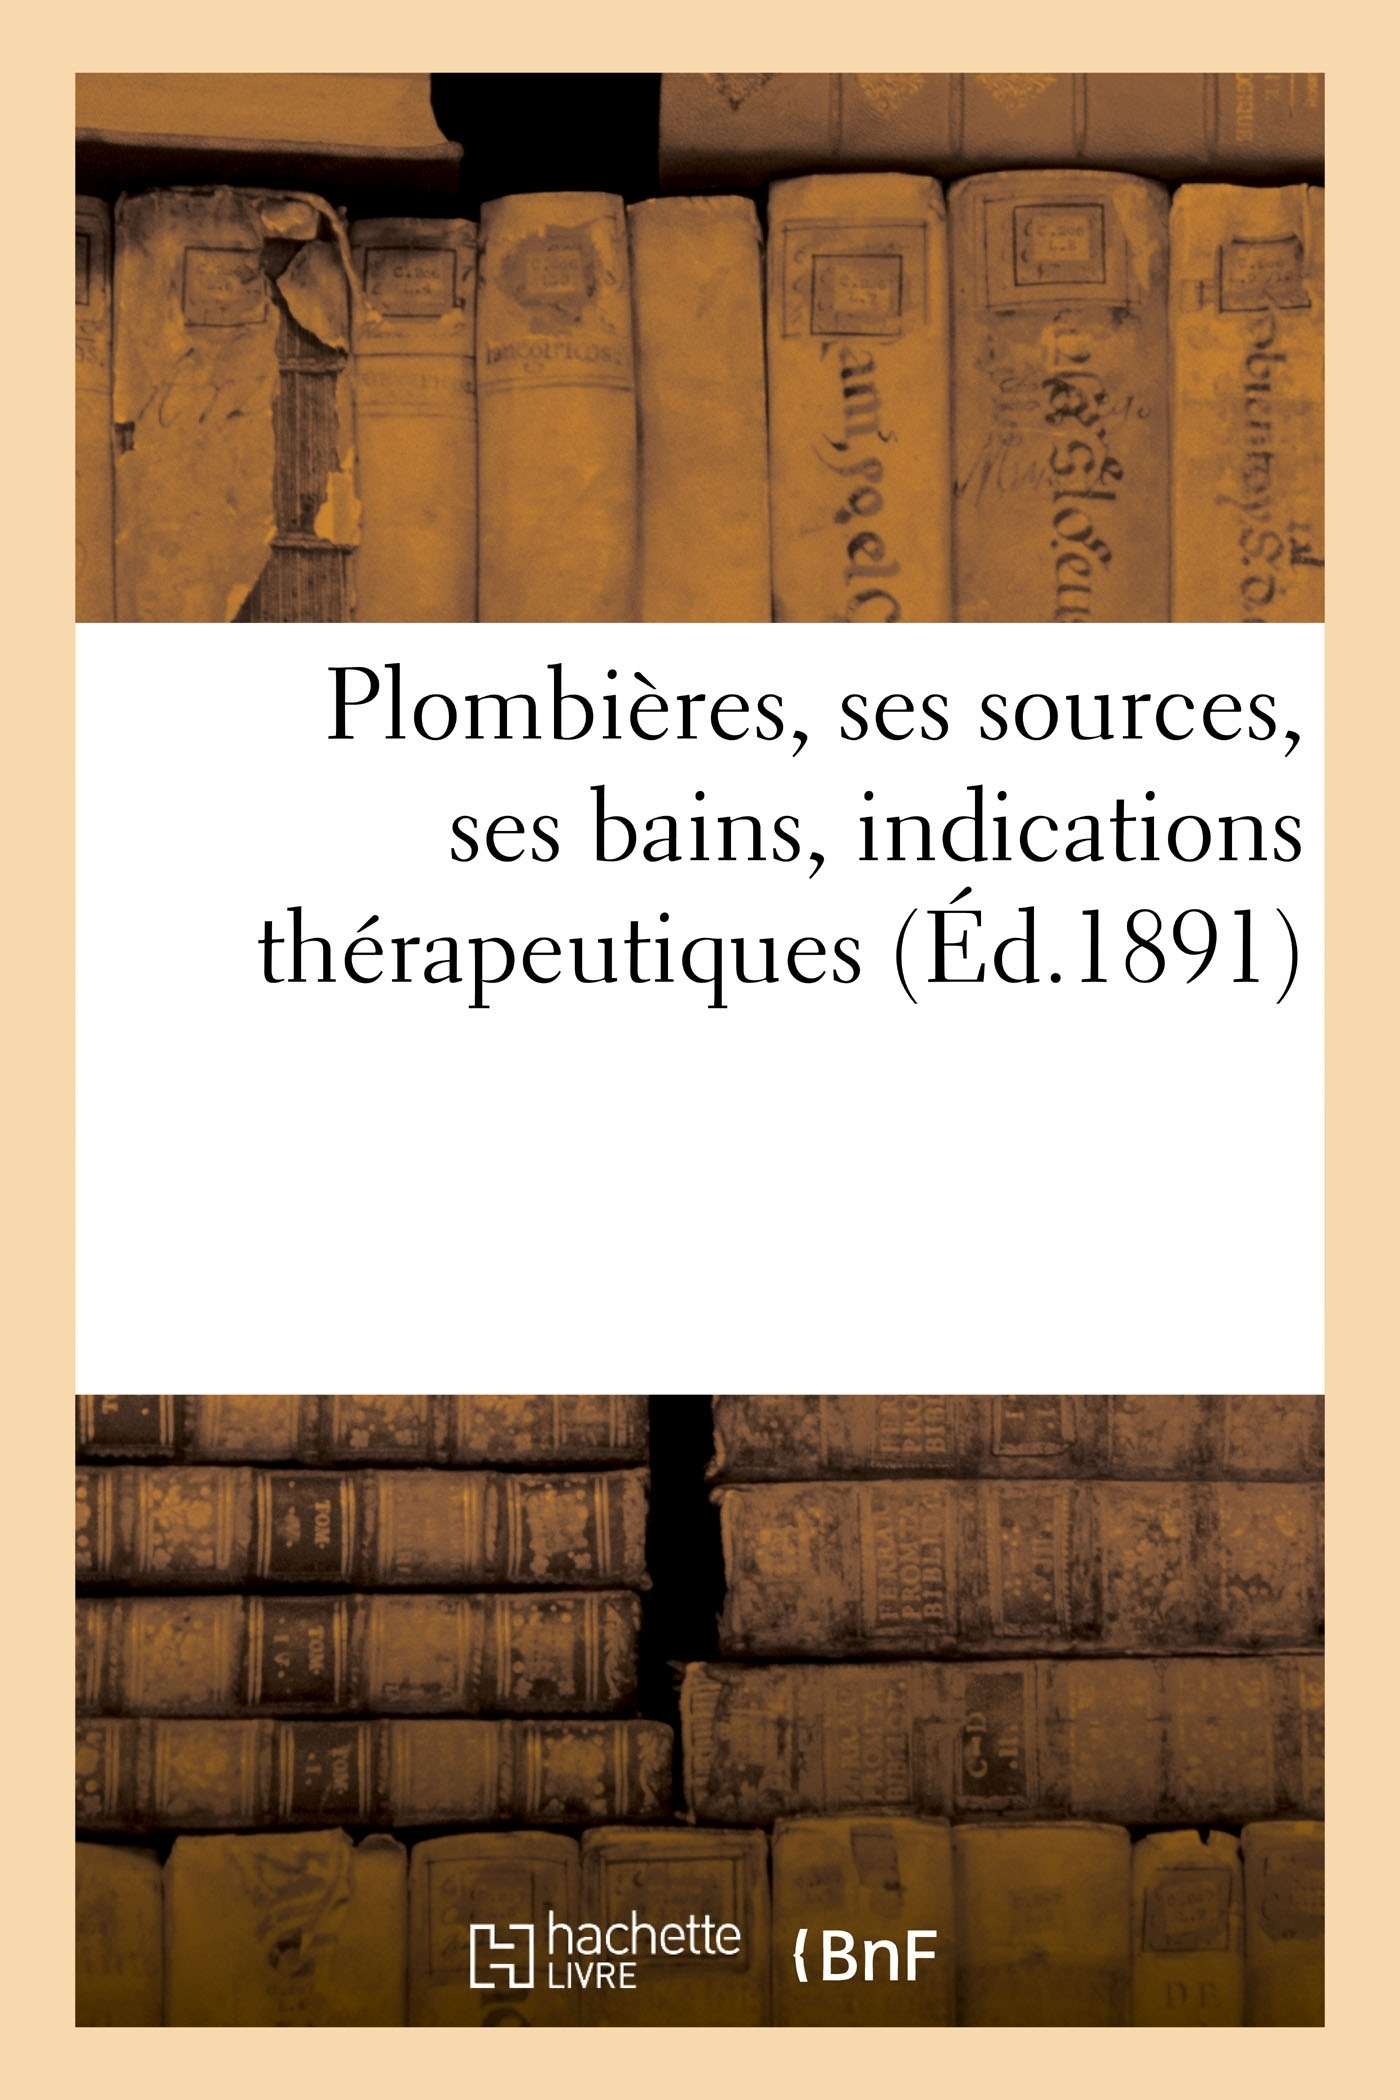 PLOMBIERES, SES SOURCES, SES BAINS, INDICATIONS THERAPEUTIQUES